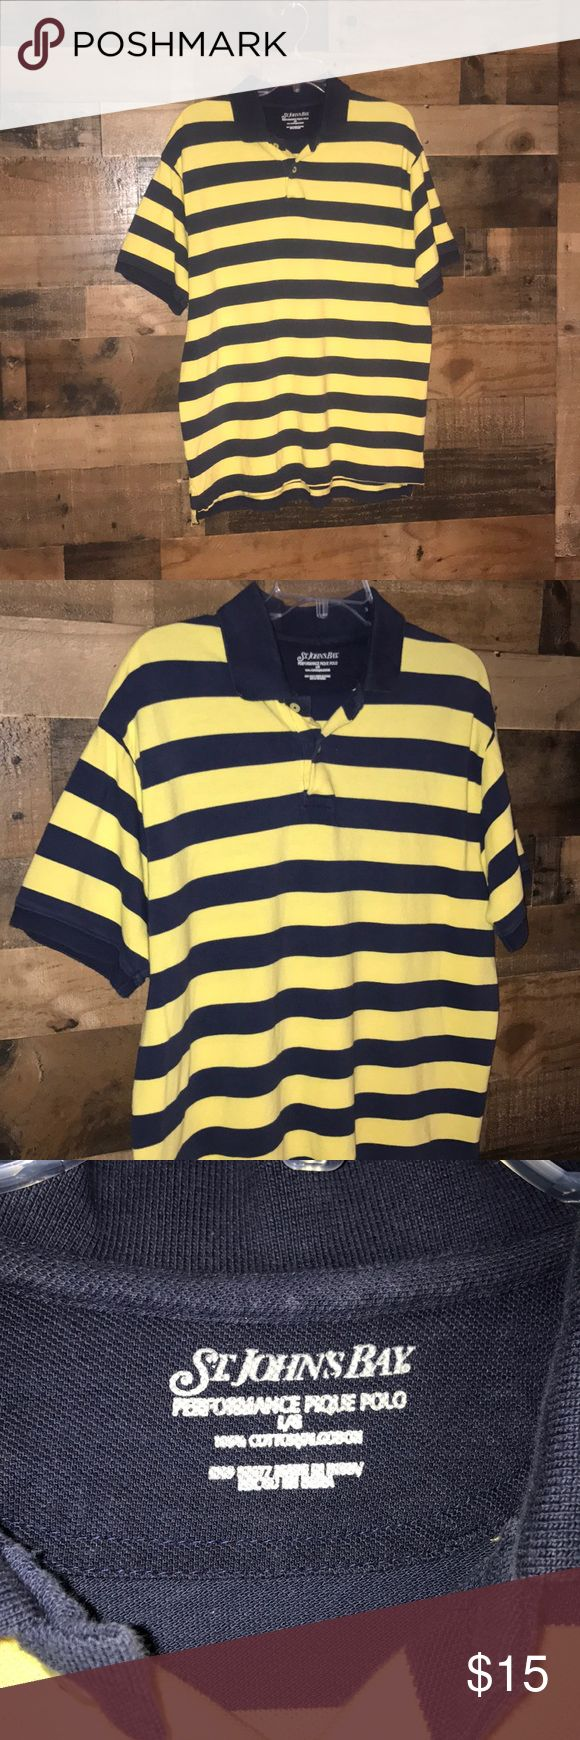 Men's collared shirt Men's St John's Bay striped collared shirt yellow and navy size L St. John's Bay Shirts